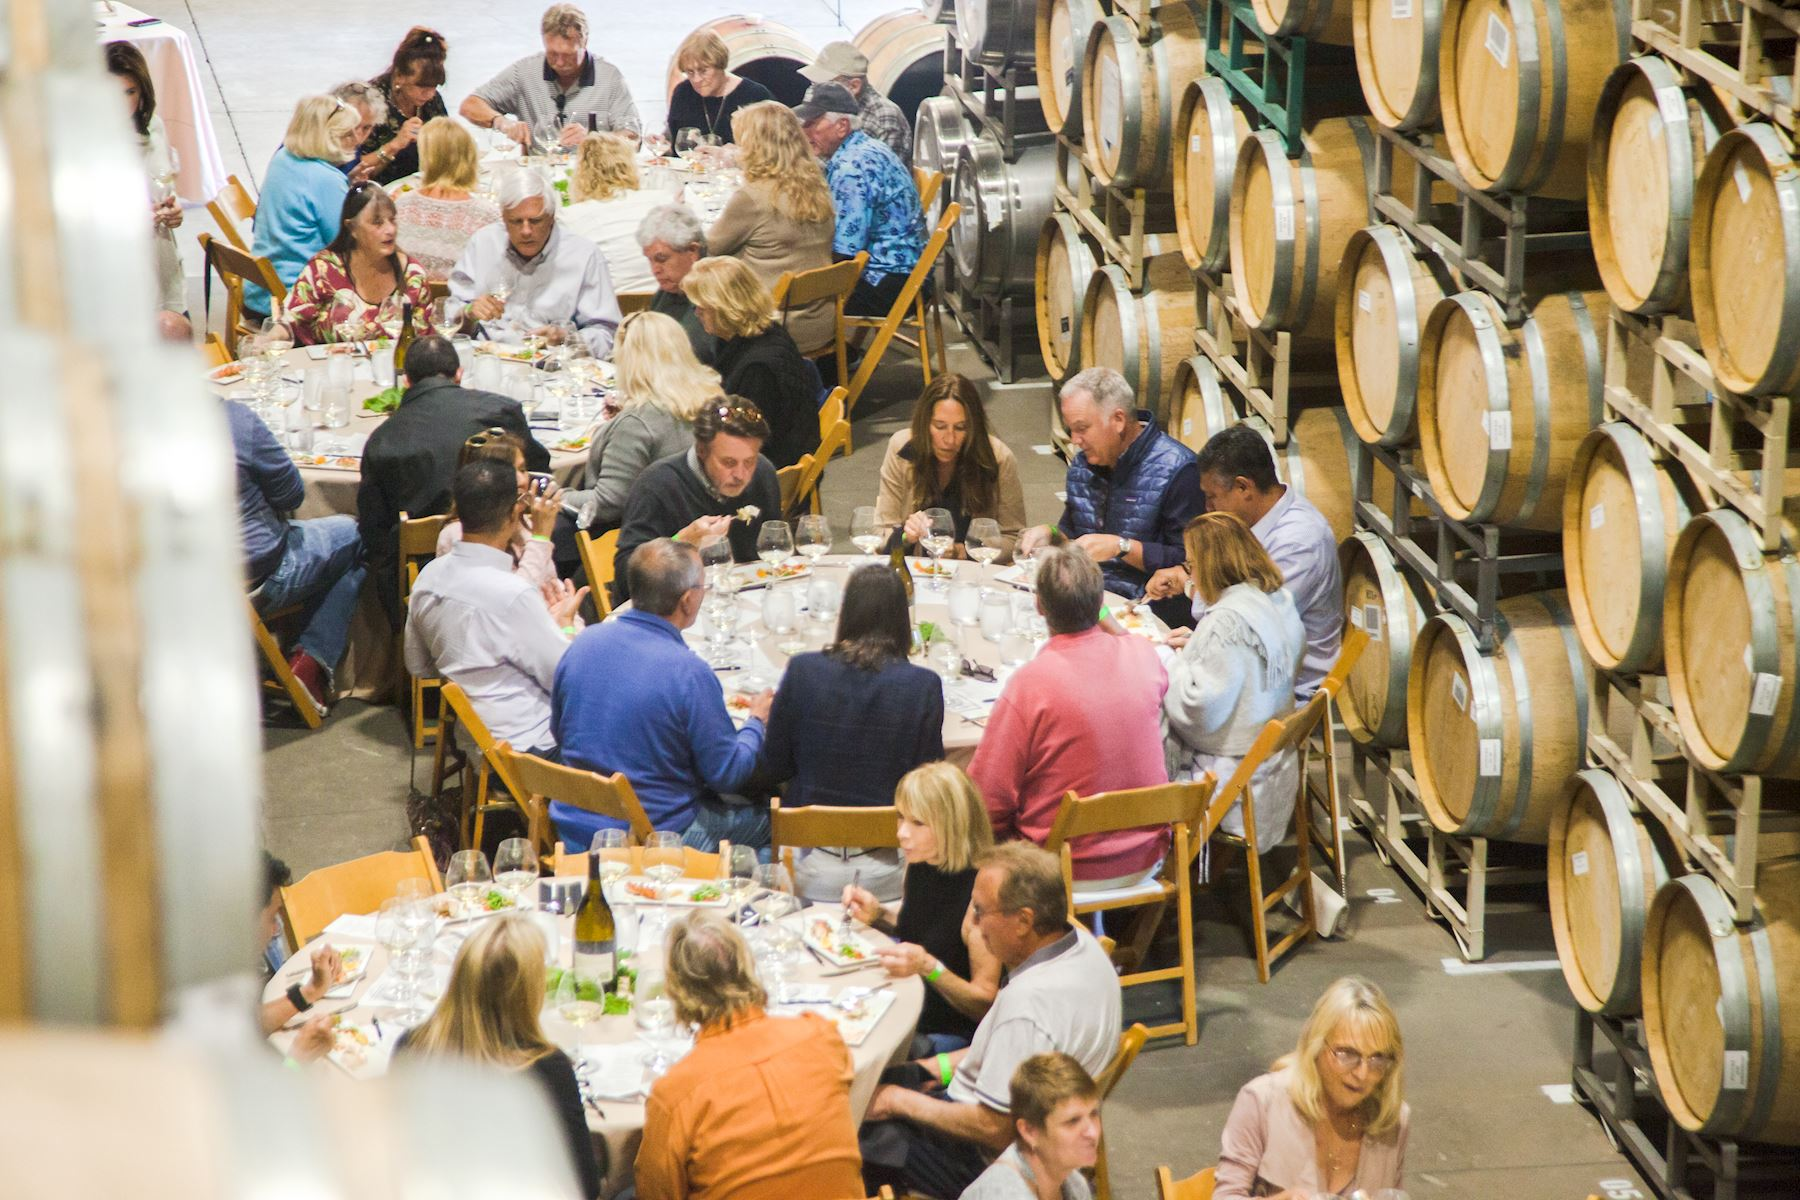 Event attendees socializing over food and wine